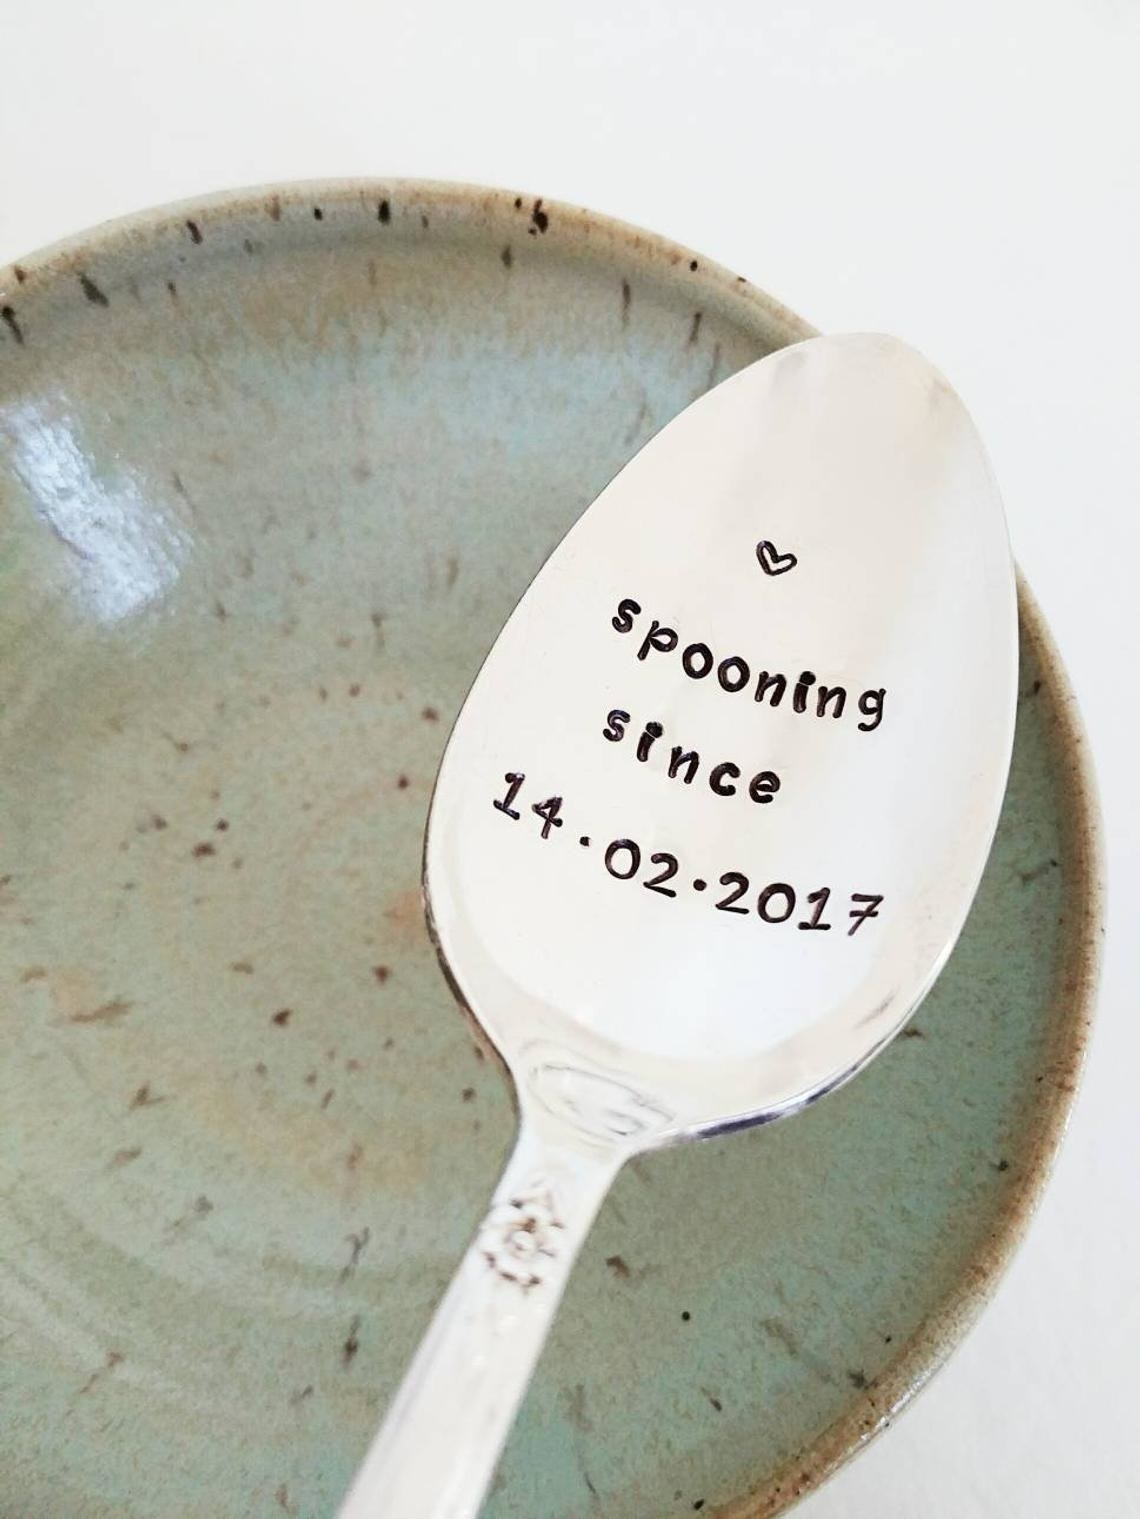 A spoon that says spooning since 14-02-2017